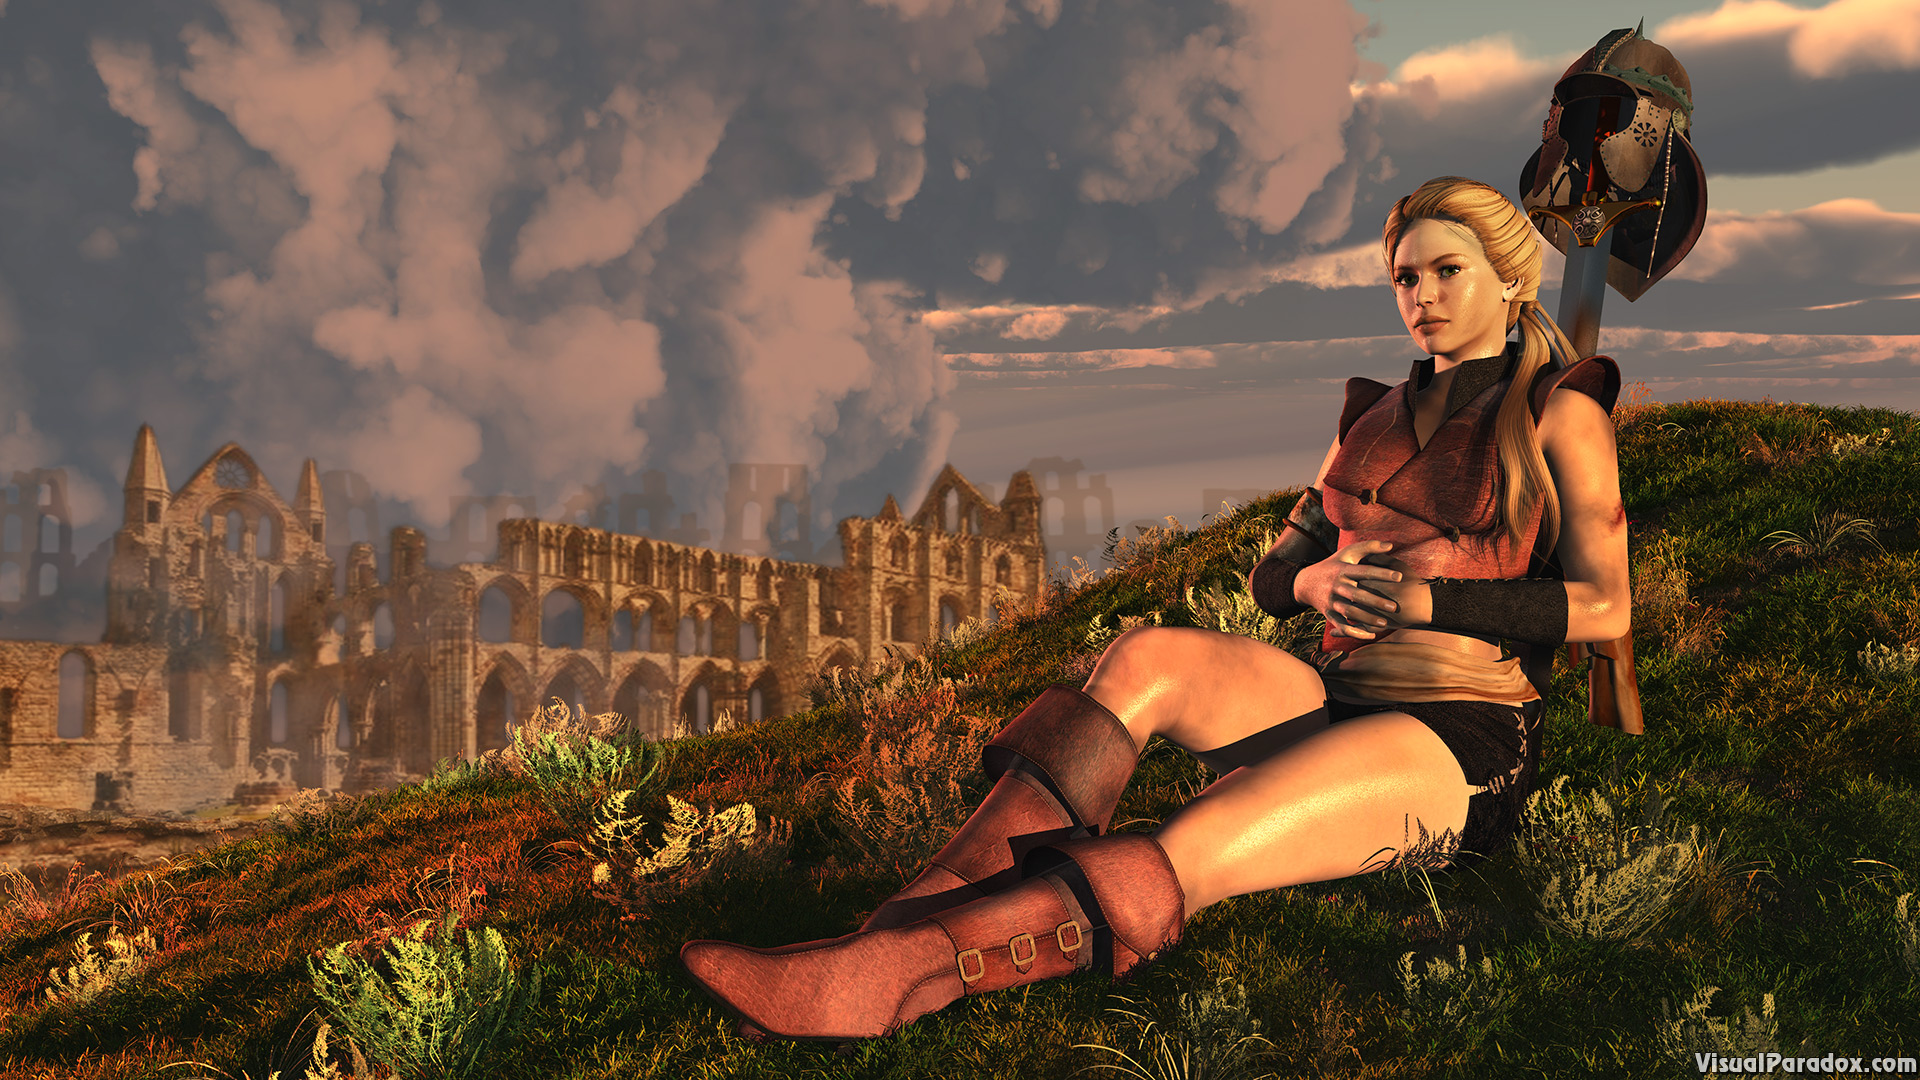 abbey, adult, aggressive, ancient, architecture, armor, armour, attractive, barbarian, battle, beautiful, beauty, building, castle, cathedral, caucasian, church, city, complete, danger, dangerous, elegance, face, fantasy, female, fight, girl, glisten, grass, history, hot, knight, lady, leather, lounge, mission, old, outdoor, person, portrait, pretty, quest, rest, retro, ruins, sack, sexy, sky, steel, sweat, sword, town, war, warrior, weapon, woman, young, 3d, wallpaper